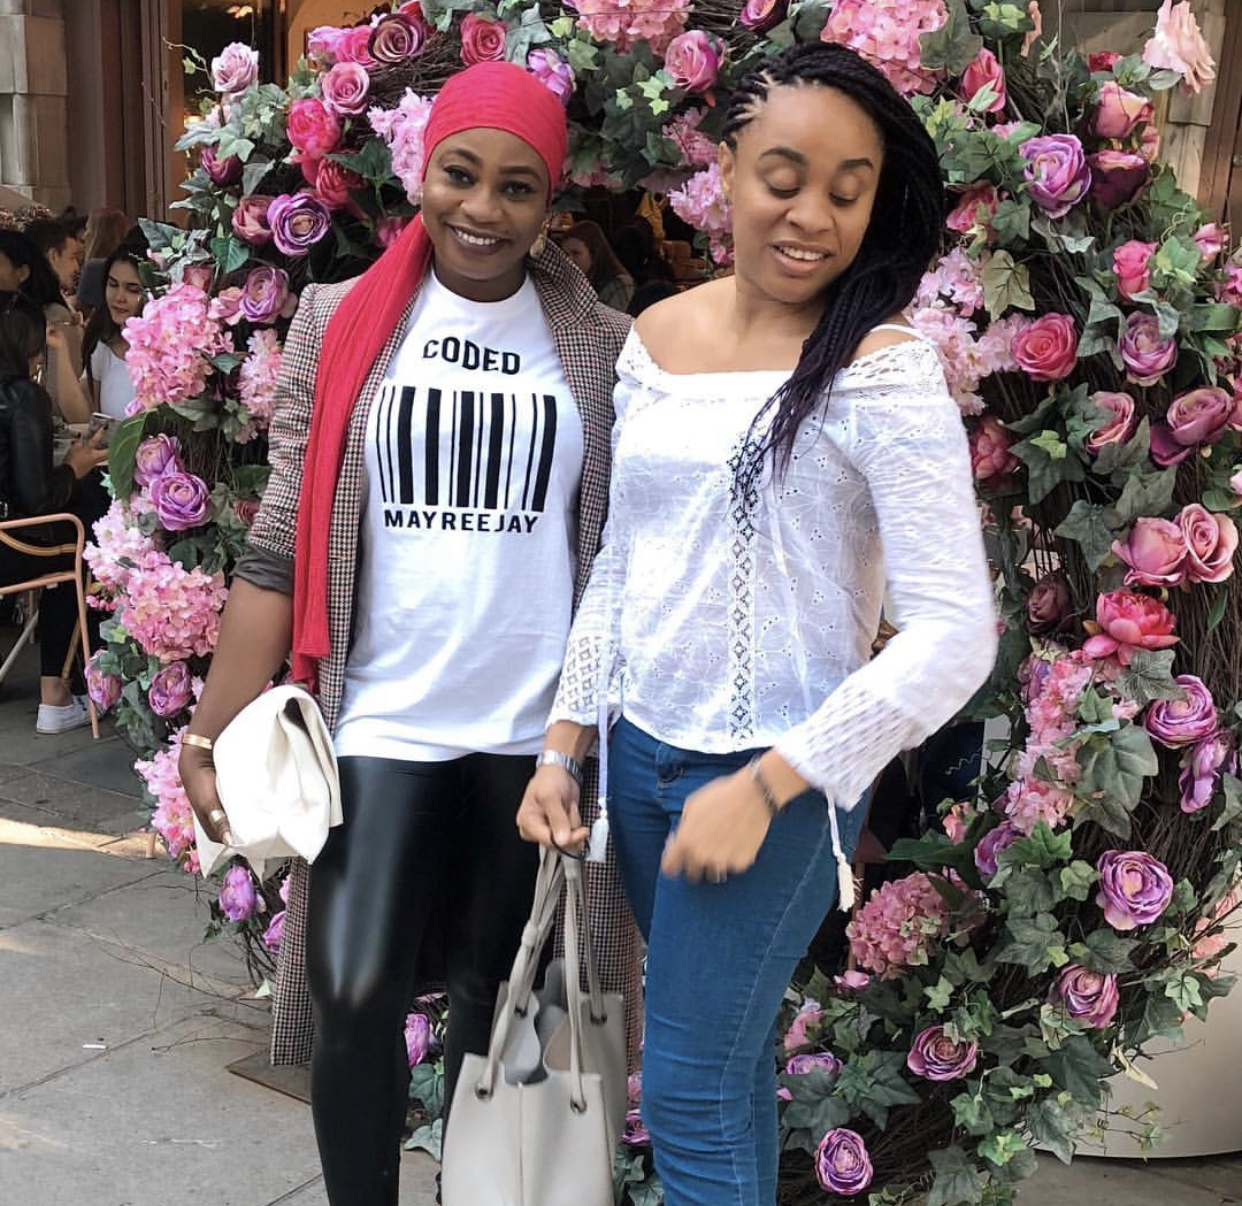 A London Guide – Cafe Crawl ft @Mayreejay